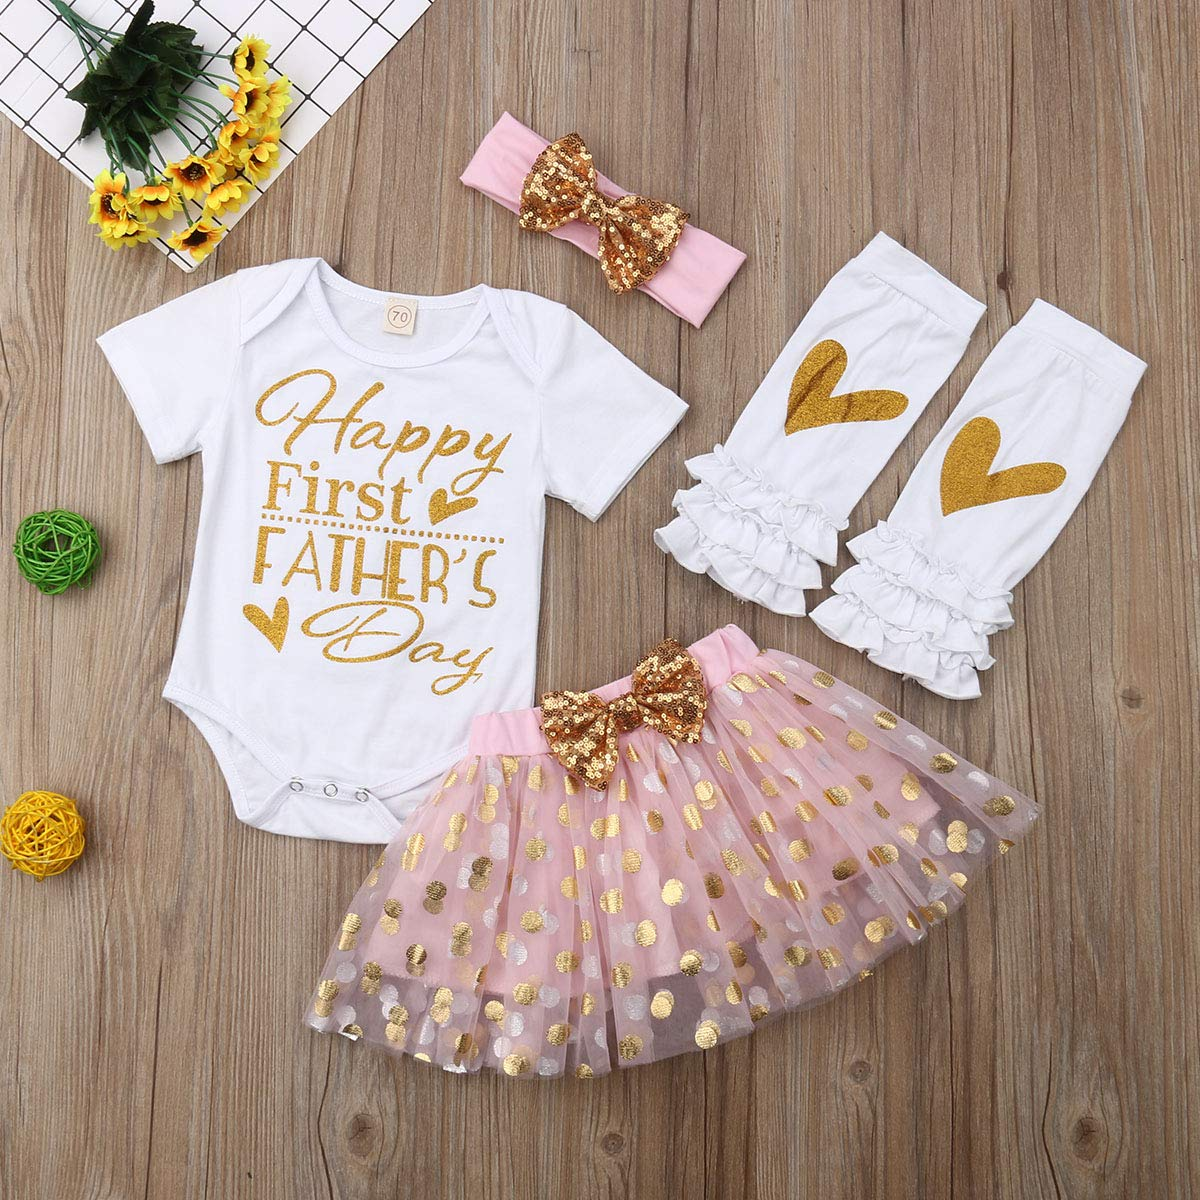 Bulingna 3Pcs//Set Newborn Infant Baby Girl Mothers Day Outfit Romper Tops+Heart Pants+Headband Summer Clothes